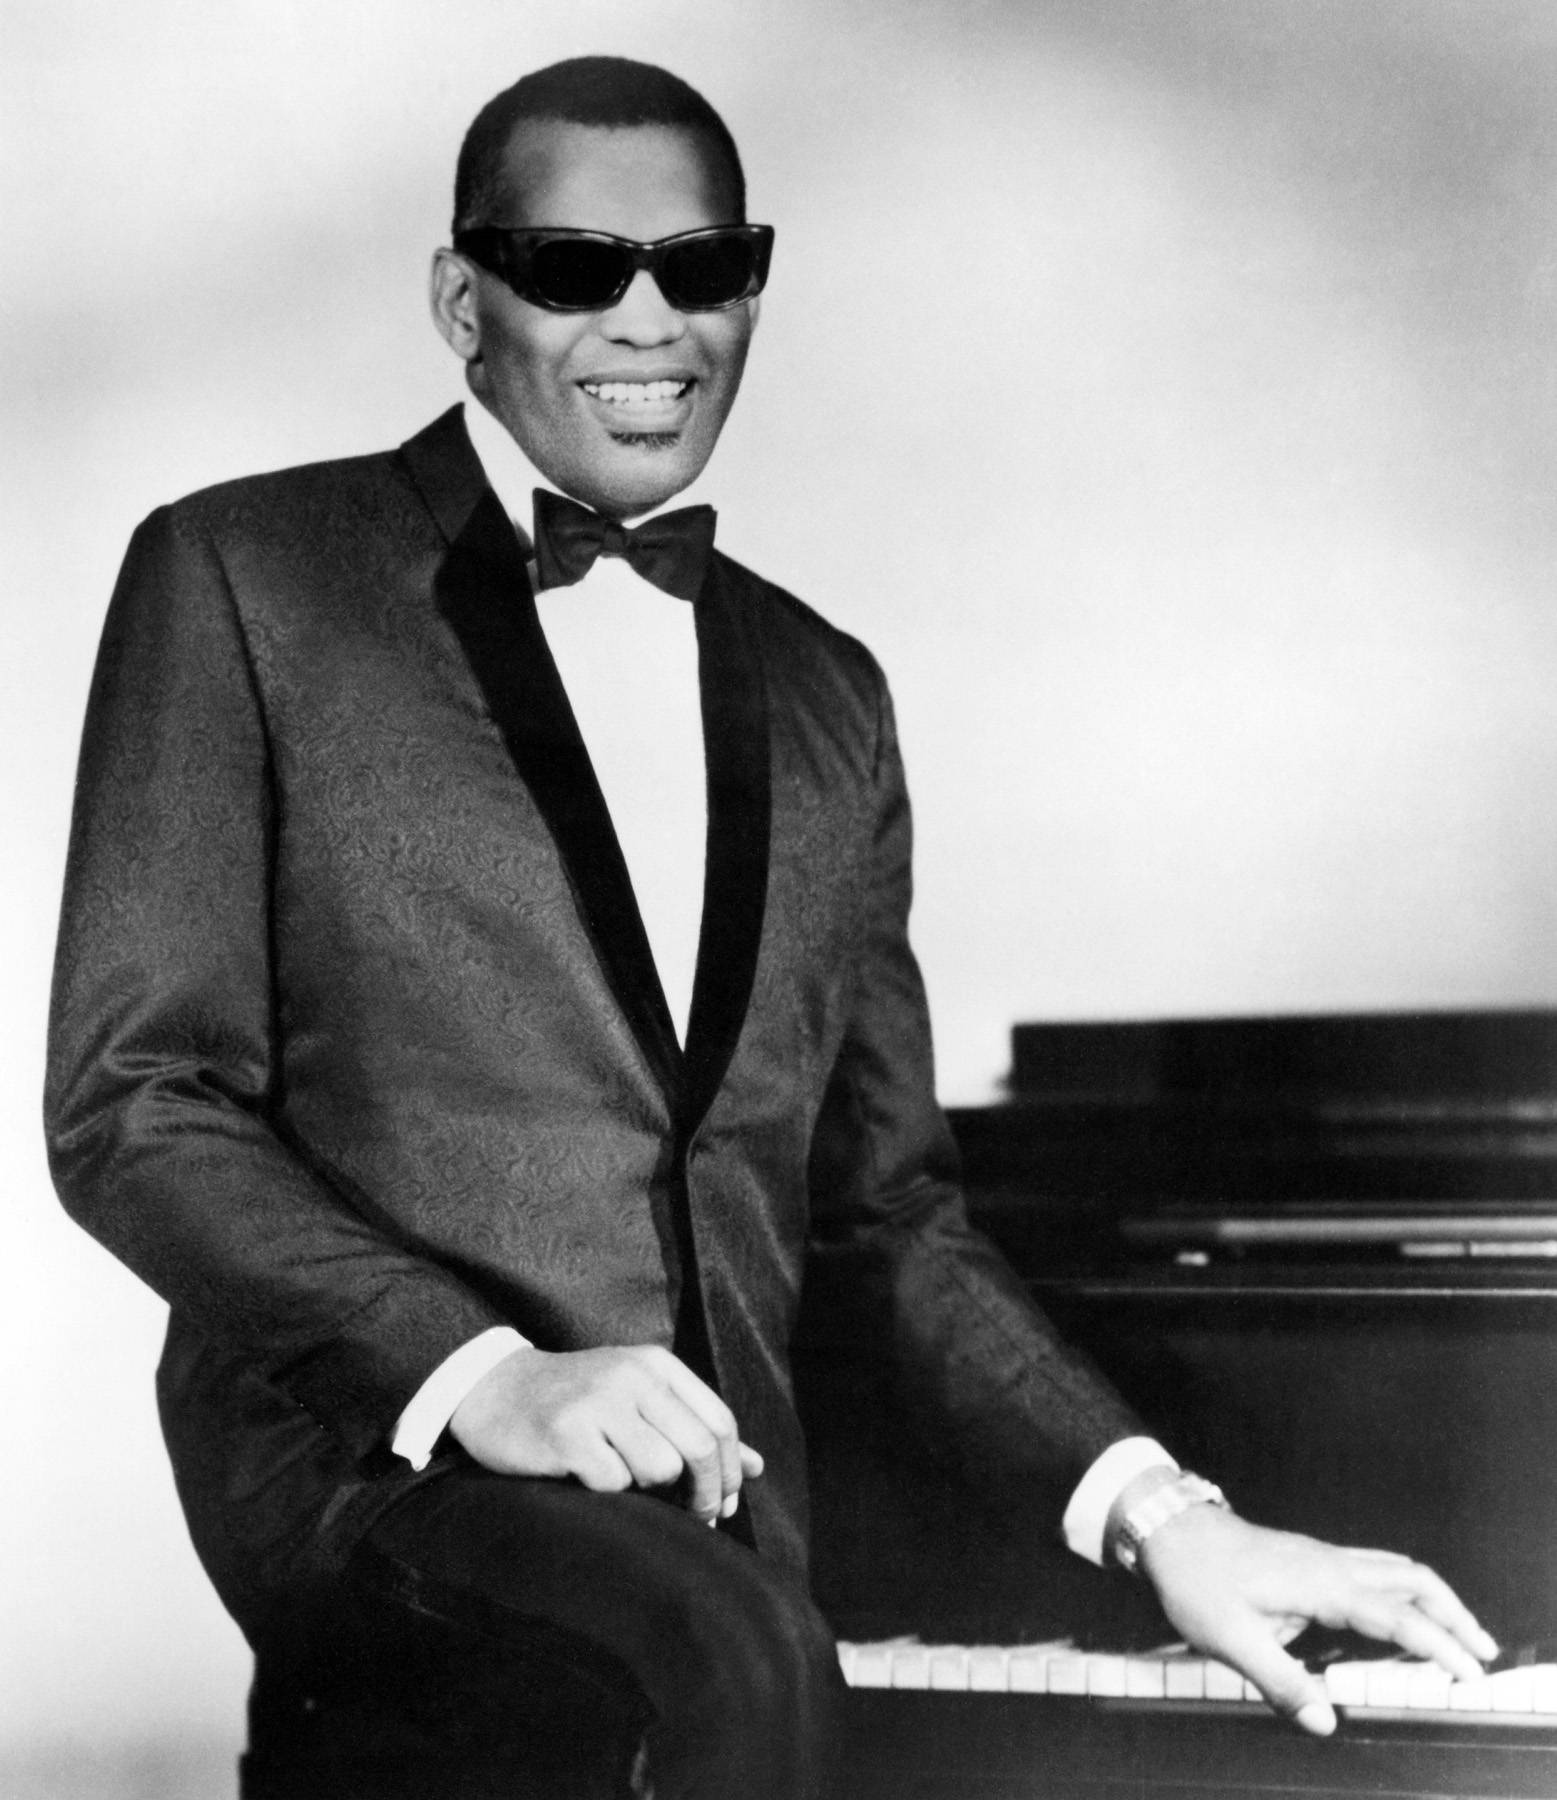 /content/dam/betcom/images/2012/08/National-08-01-08-15/080912-national-republican-national-convention-tampa-florida-ray-charles.jpg